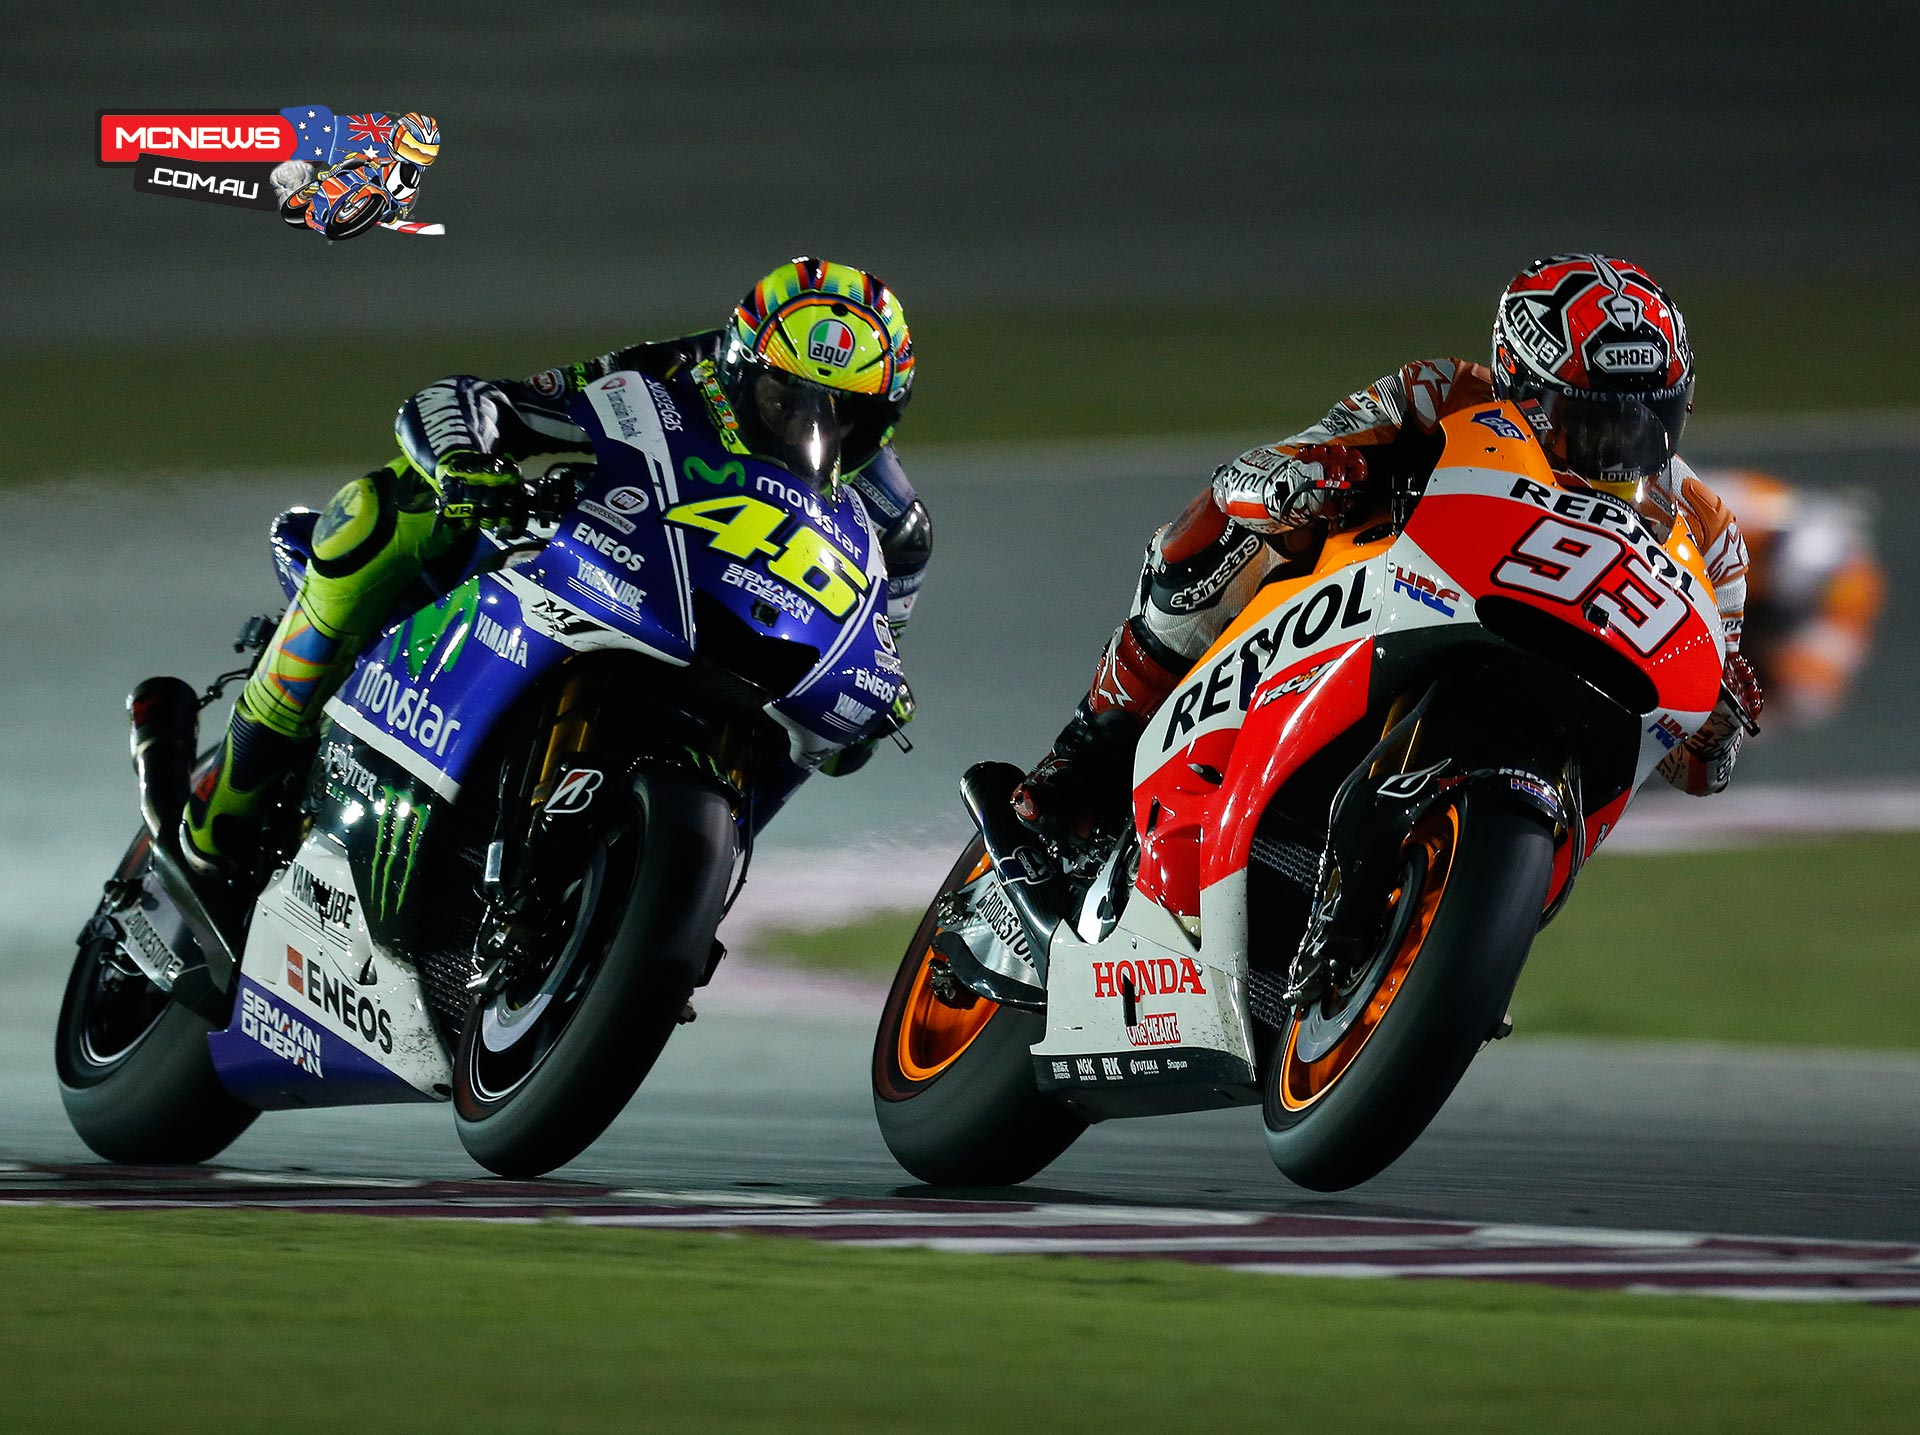 Rossi piled the pressure on Marquez and took the lead on the penultimate lap but Marquez came right back at him hard.